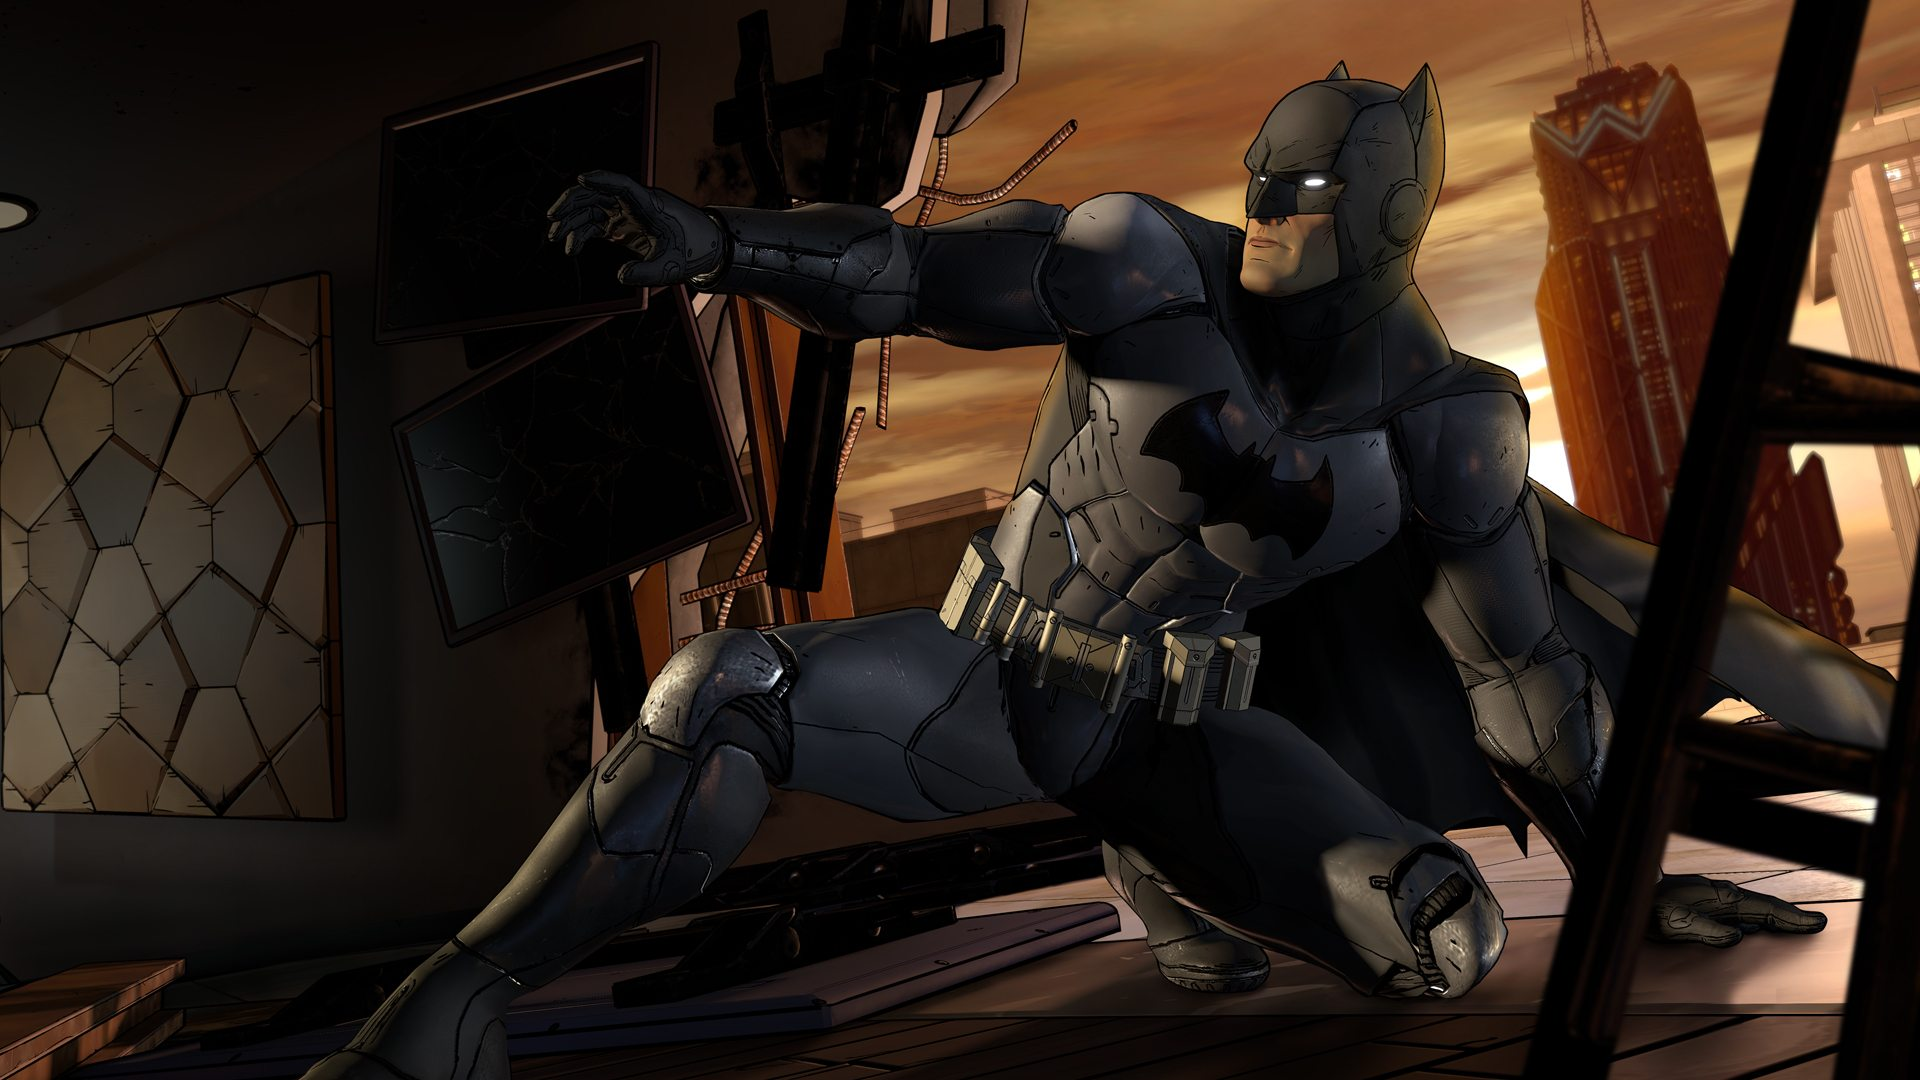 BATMAN - The Telltale Series Ep. 2: Children of Arkham Now Available, Behind the Scenes Trailer